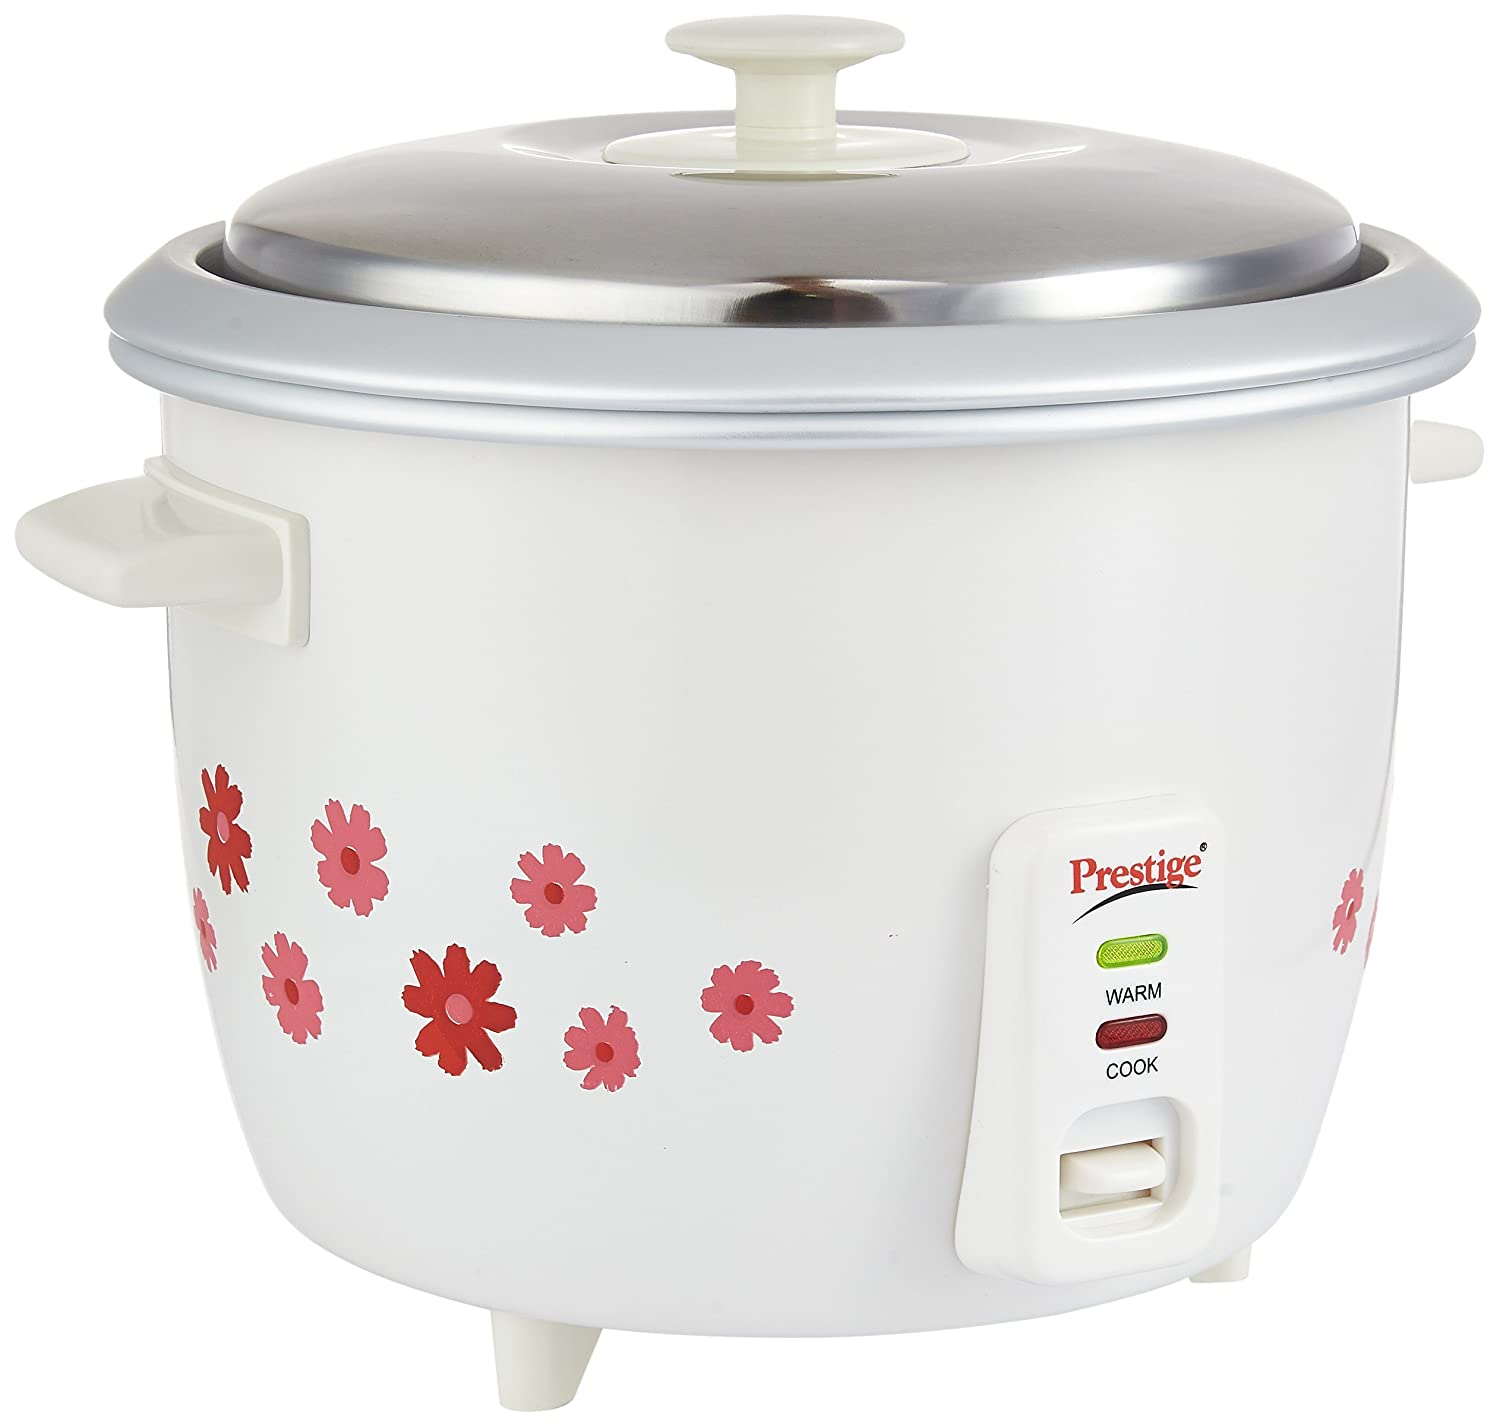 Buy Prestige PRWO 1.8-2 700-Watt Electric Rice Cooker Online at ...